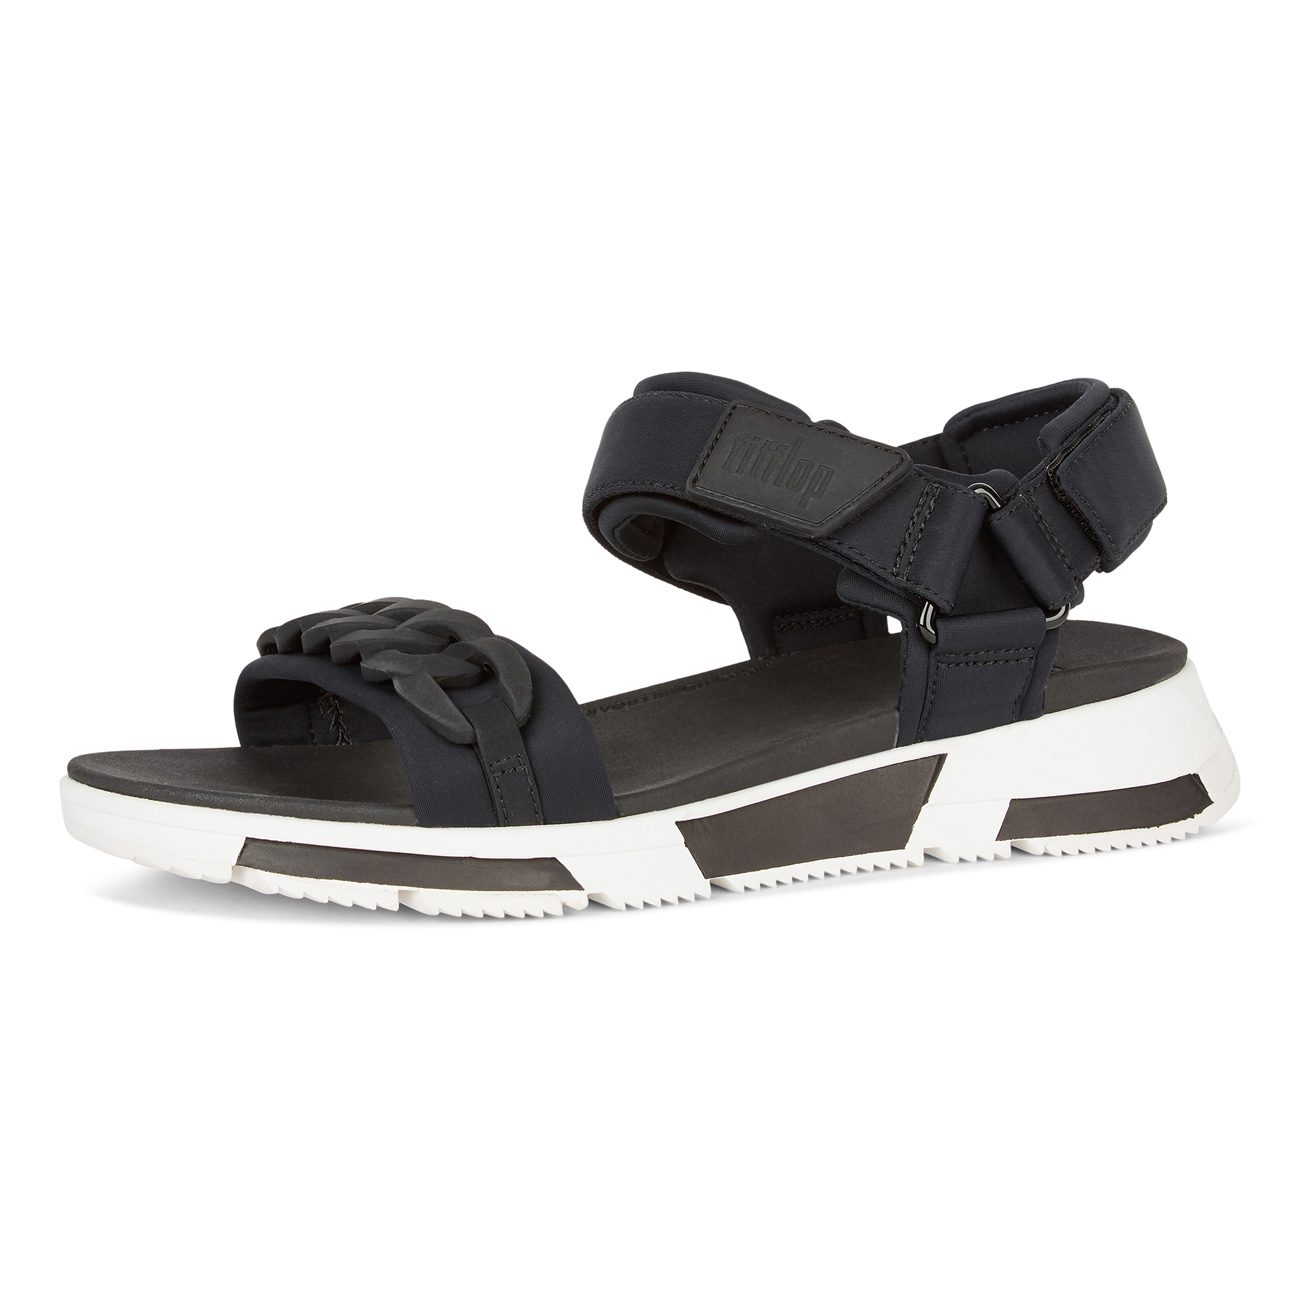 Heda Chain Back-Strap Sandals